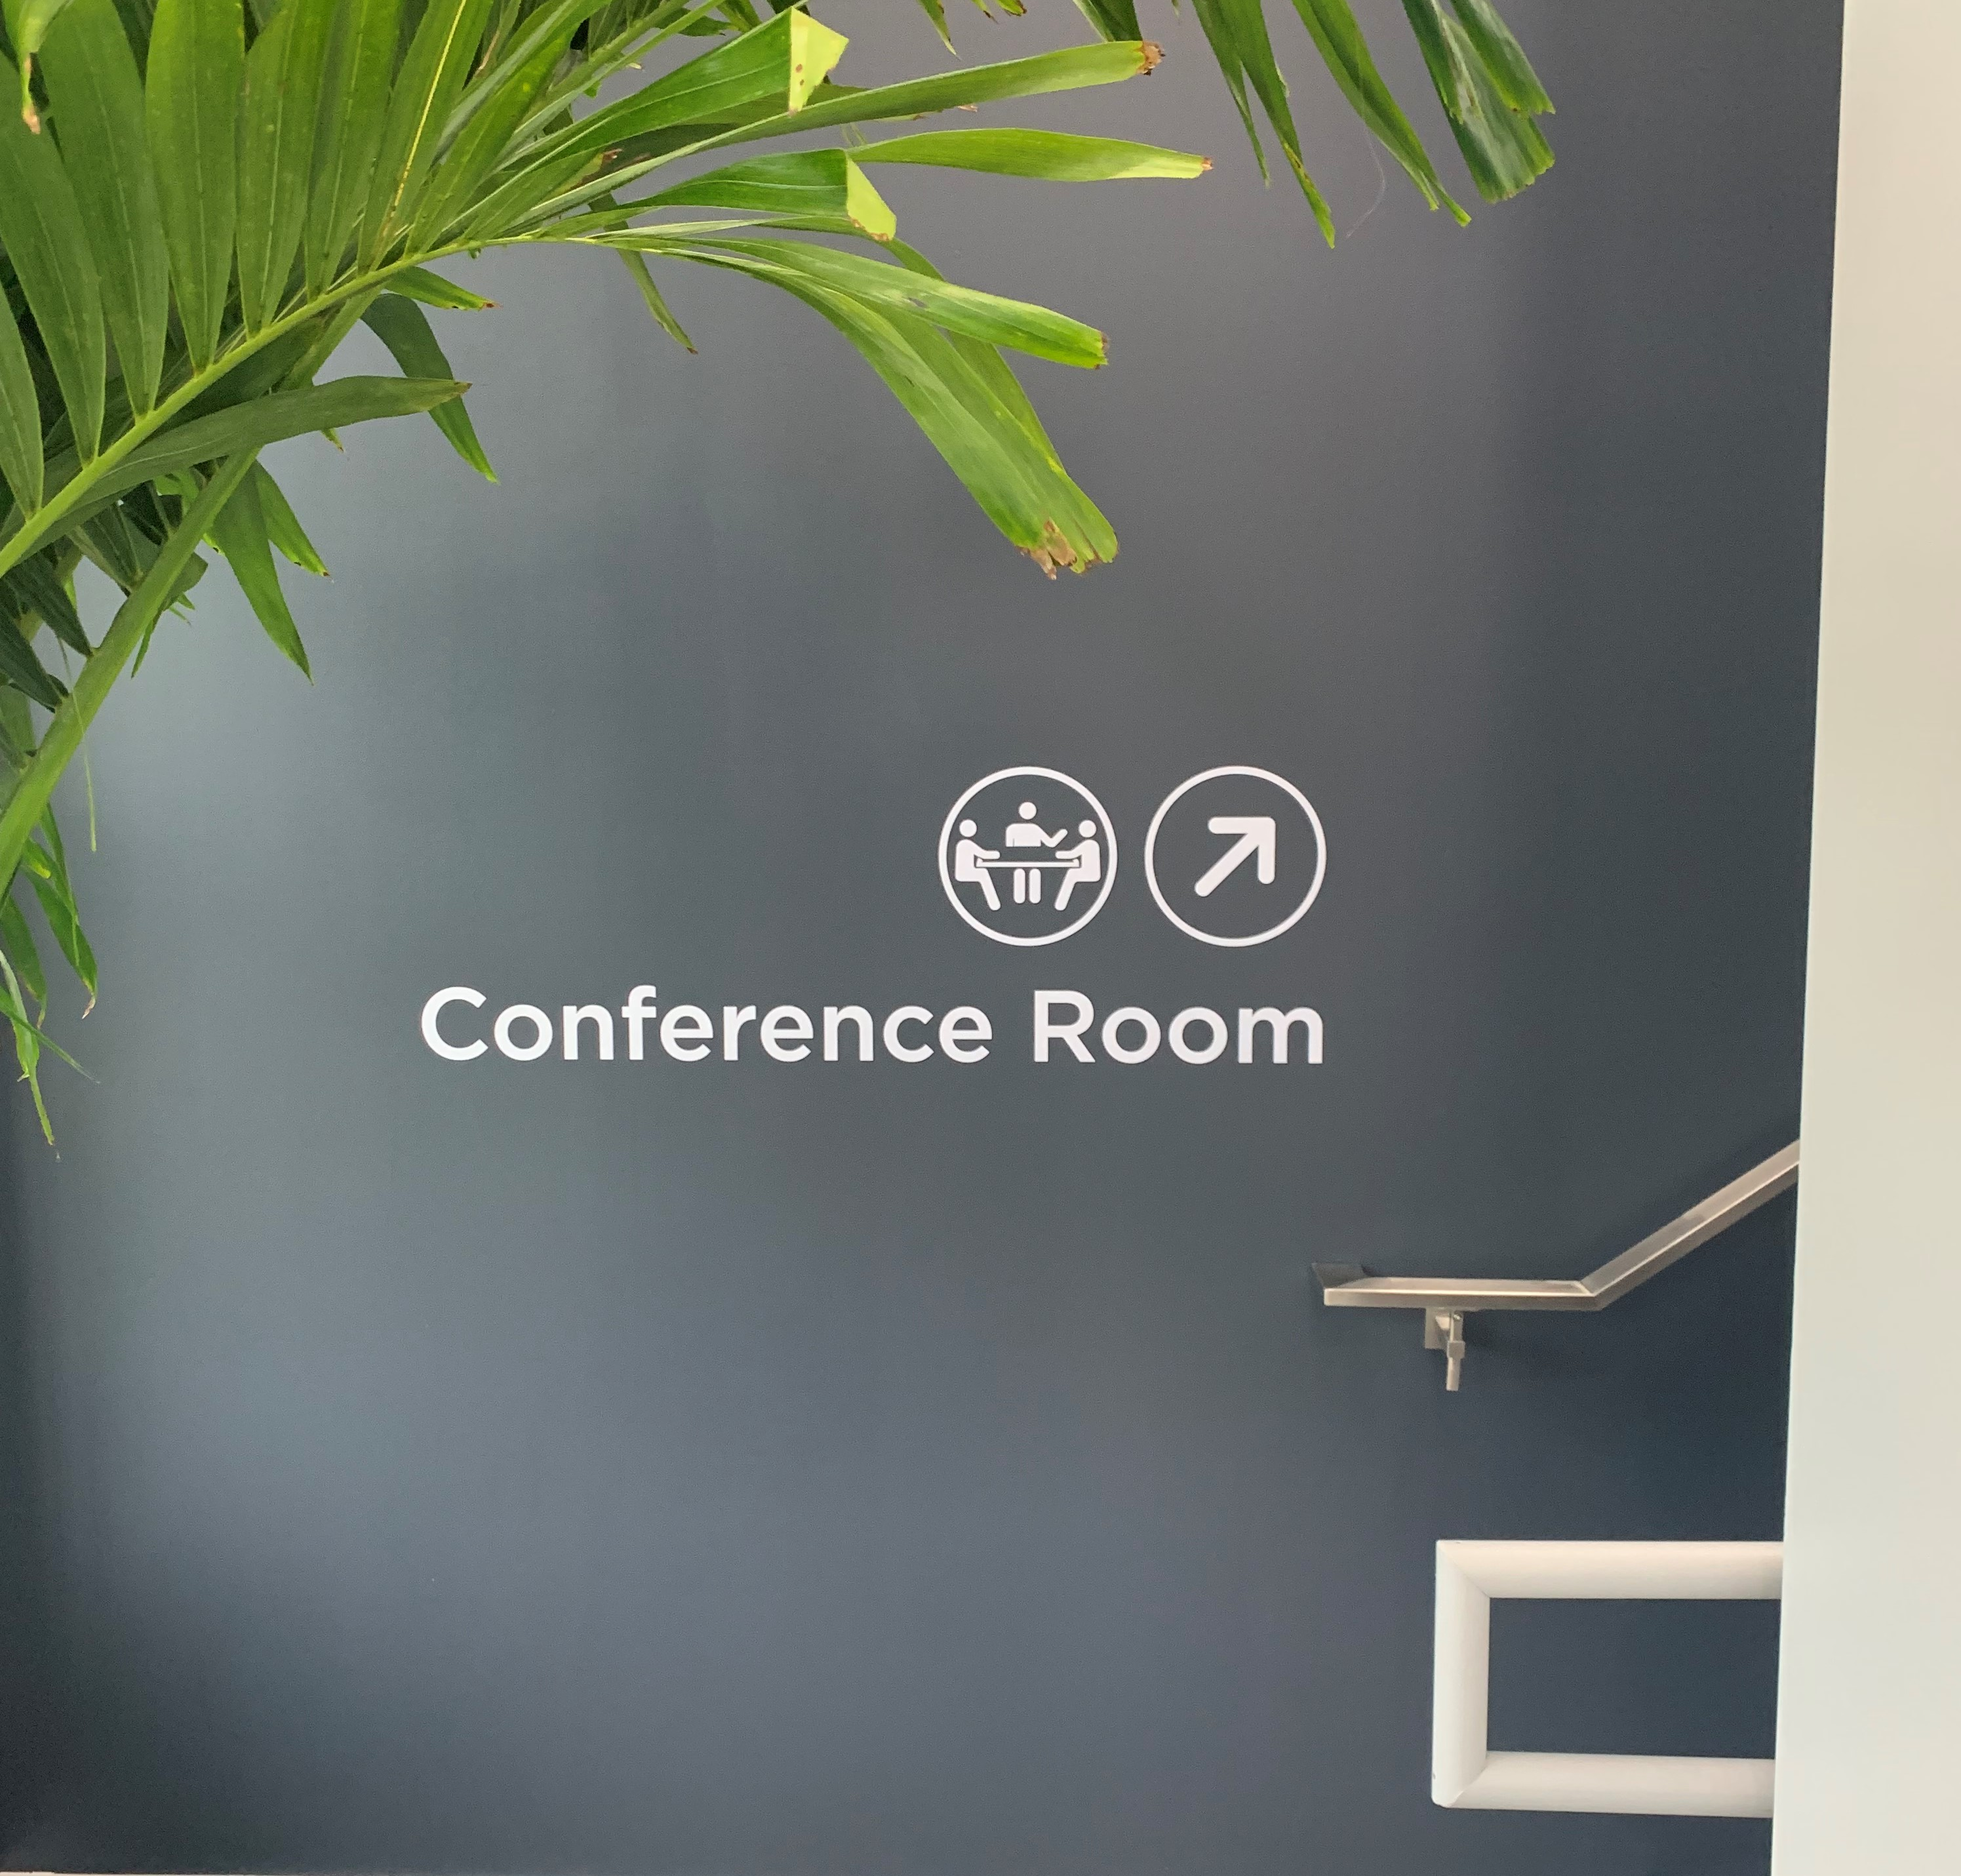 Conference Room Wayfinding Sign